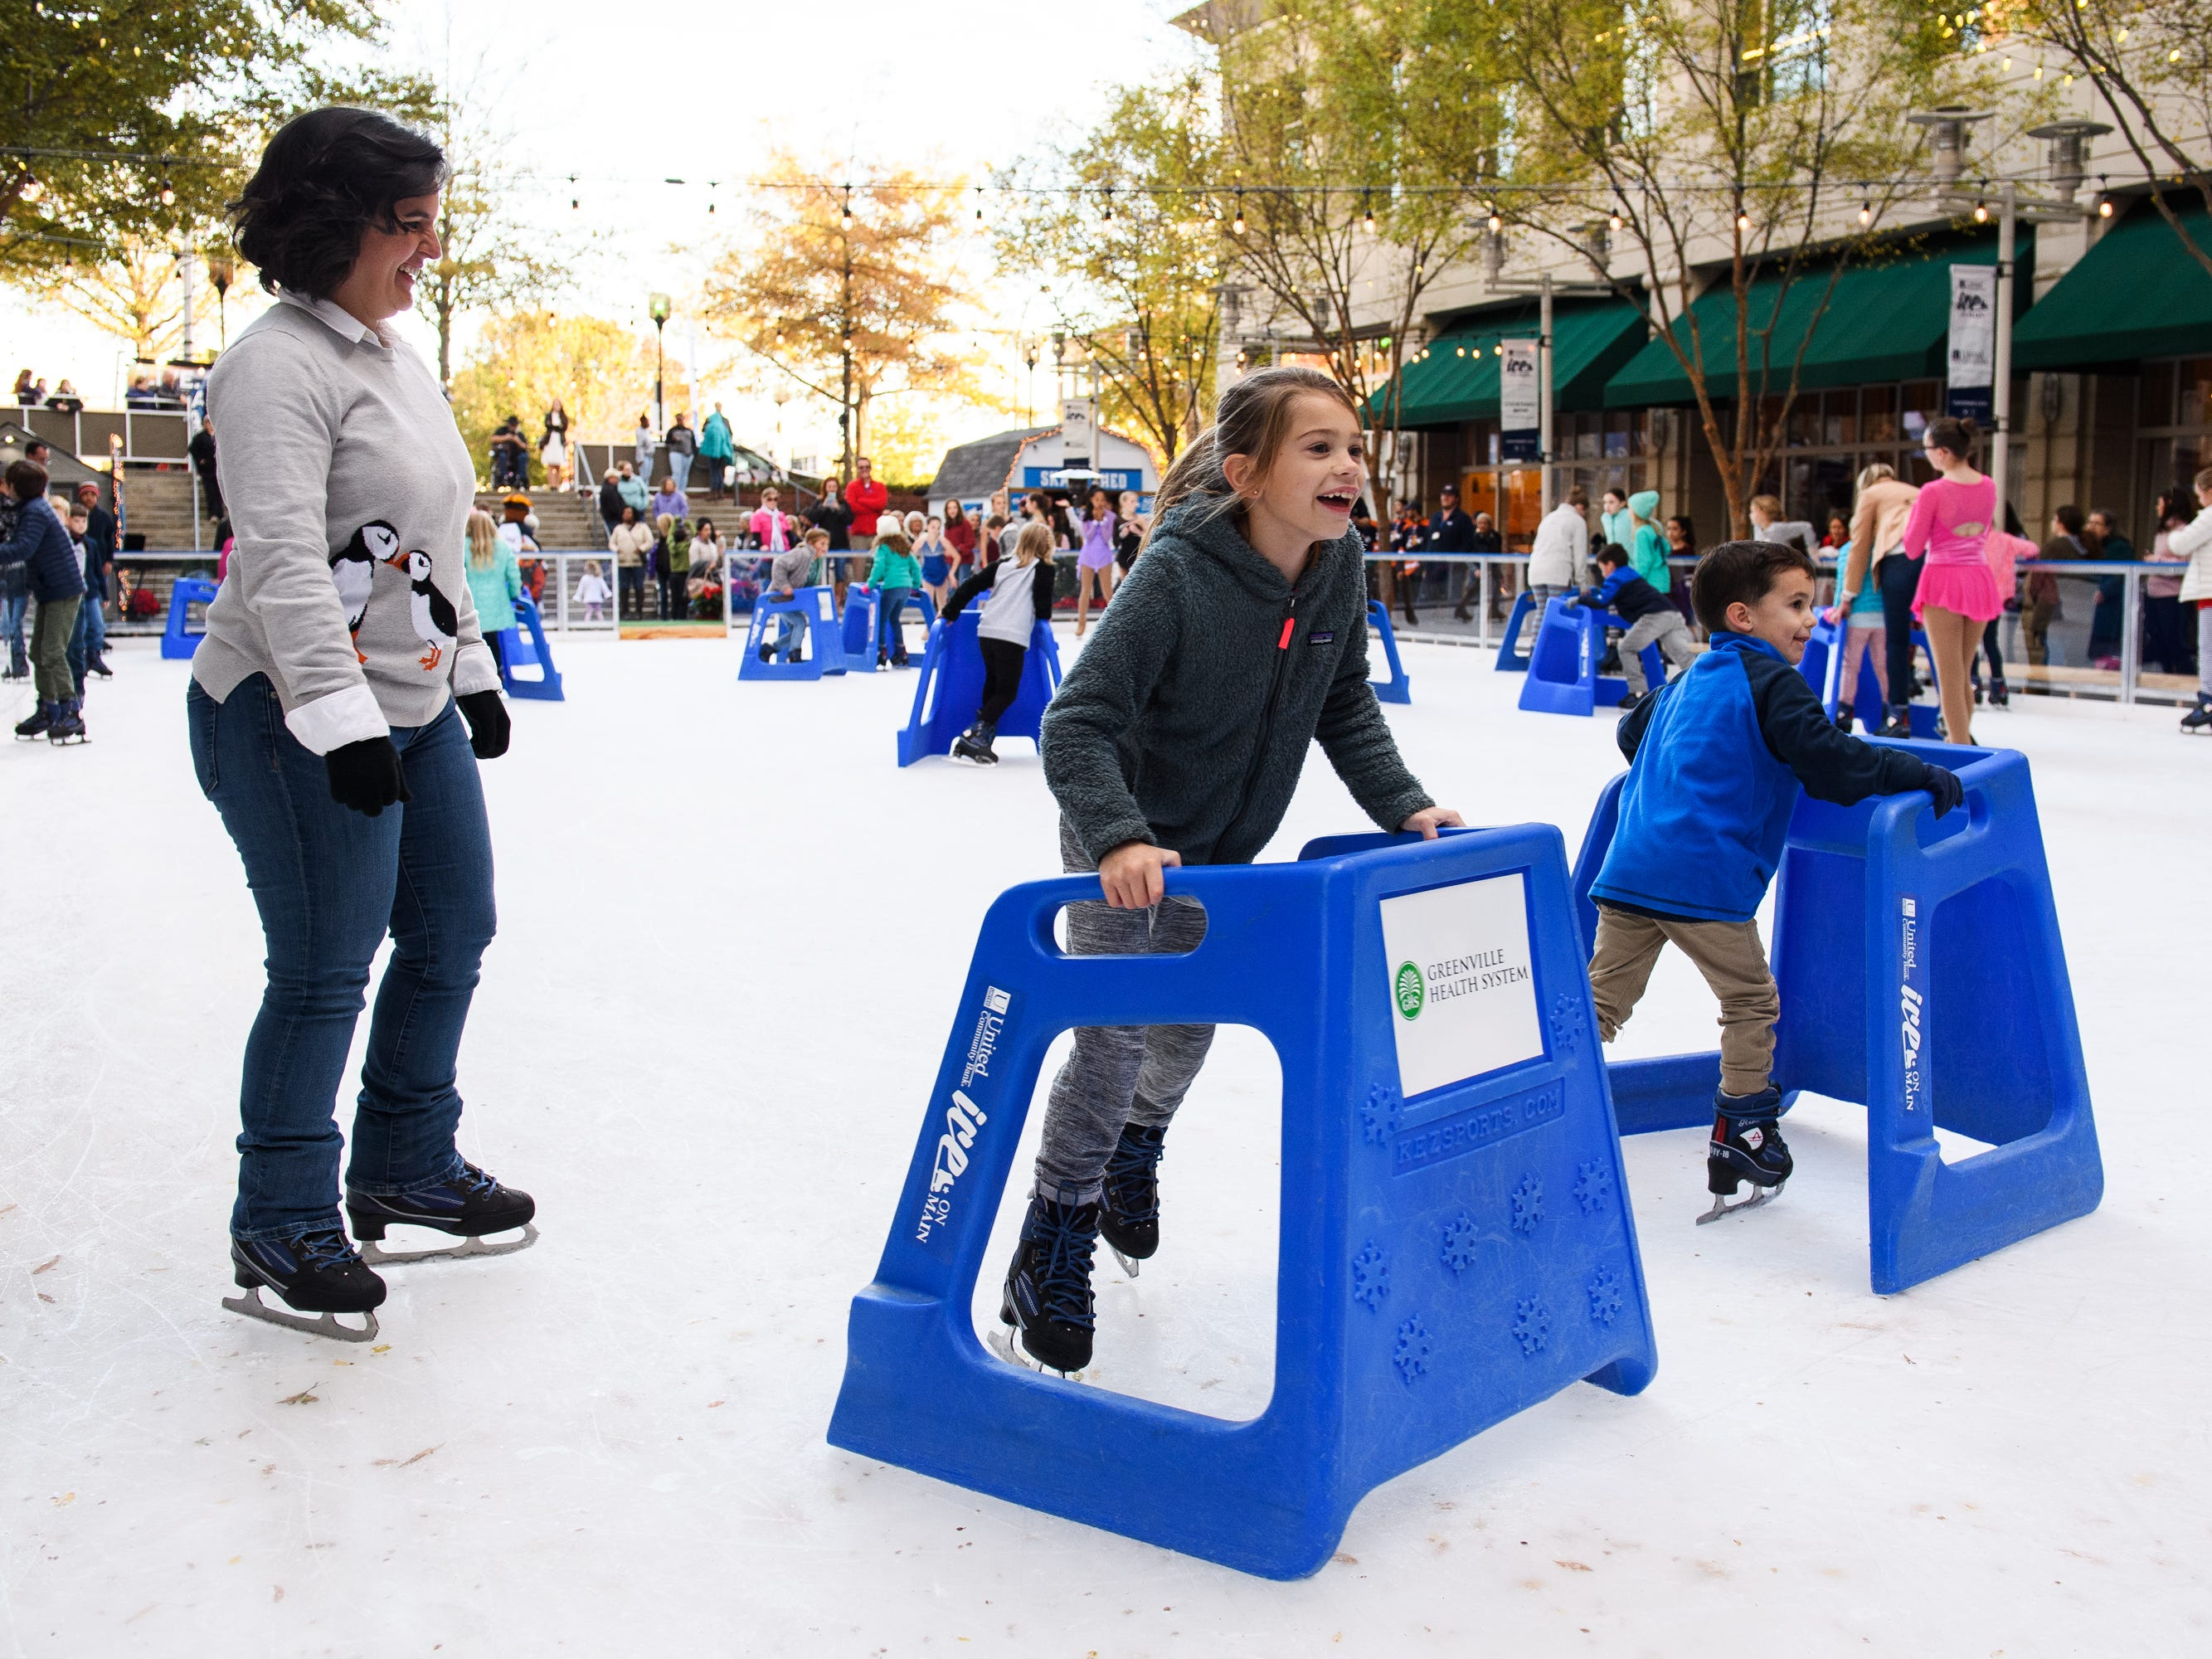 Ice on Main officially kicks off the holiday season in downtown Greenville on their opening day on Friday, Nov. 16, 2018.